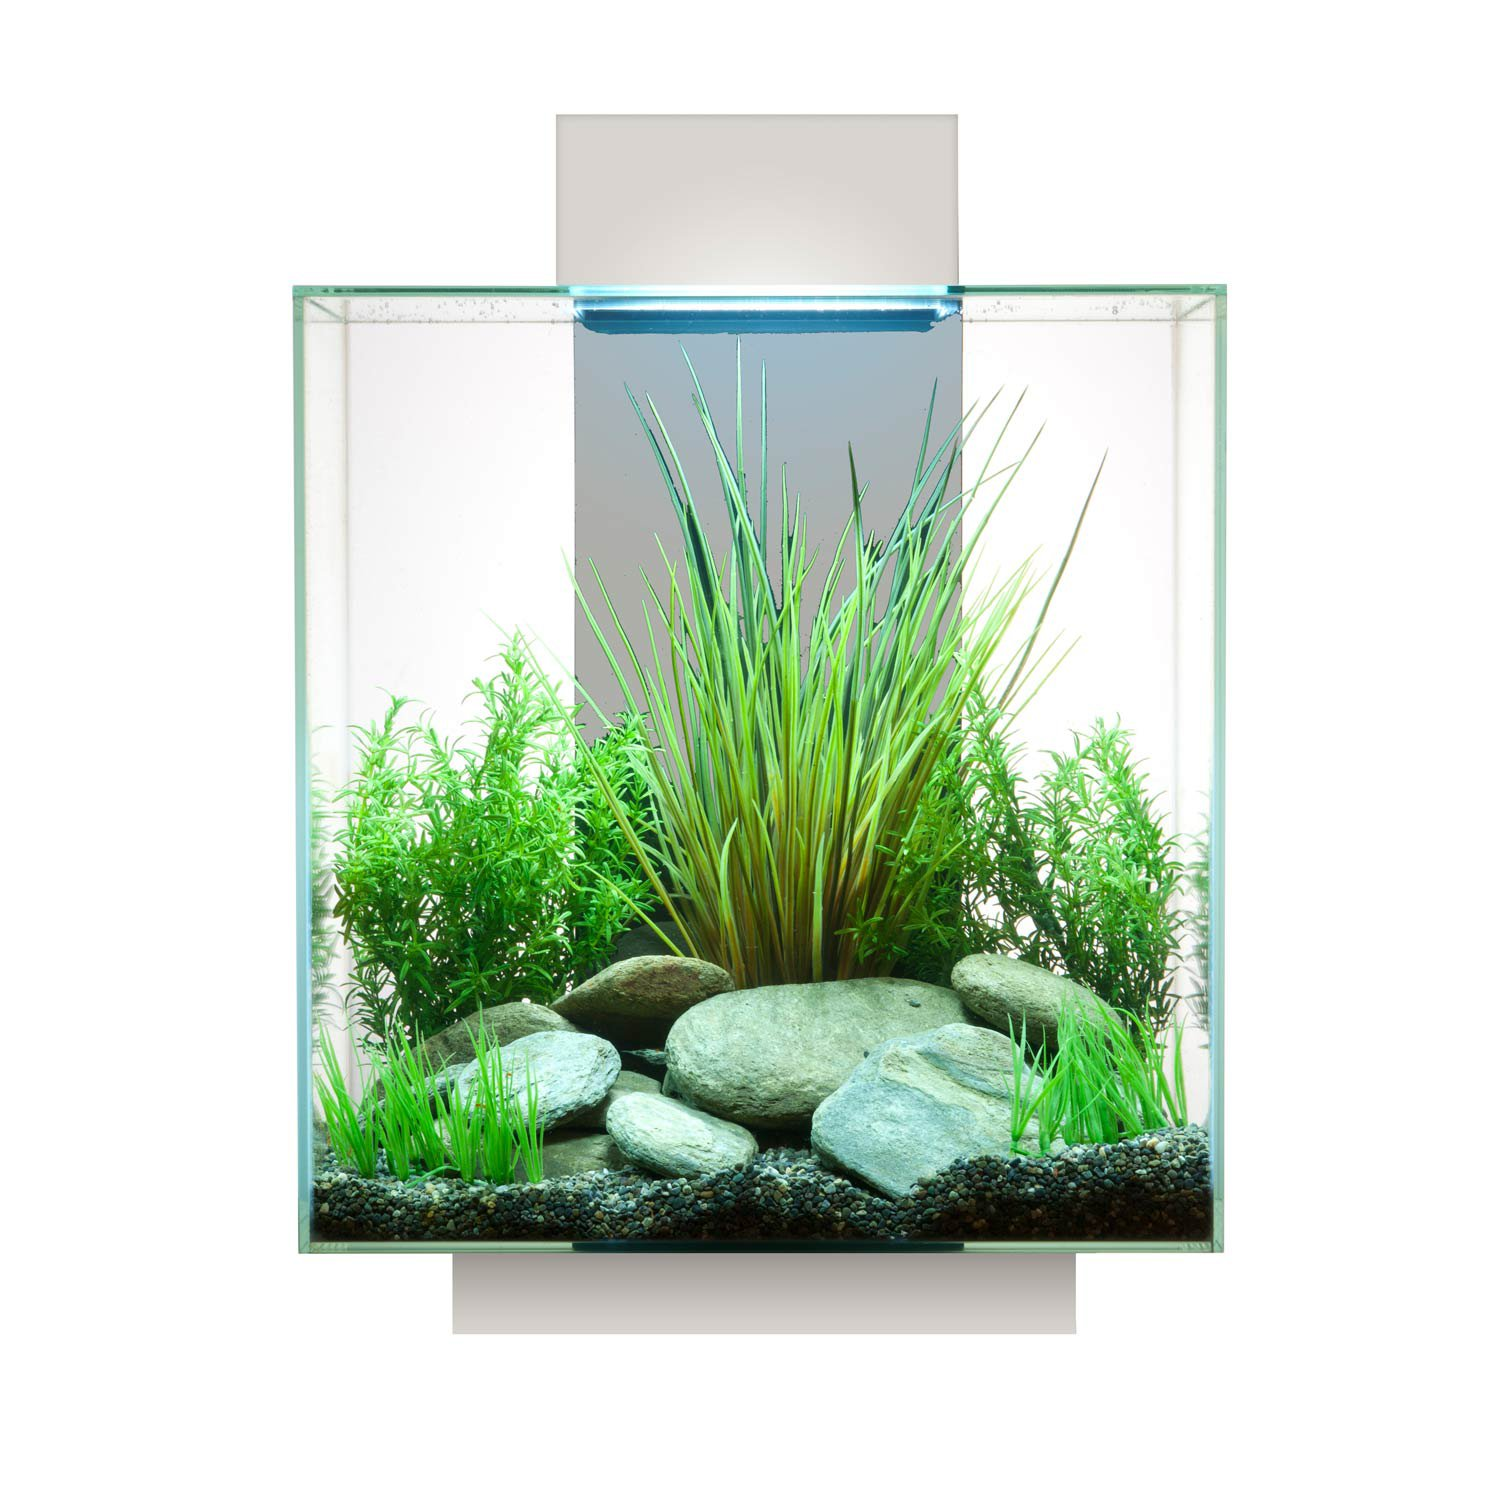 Fluval edge aquarium kit in white petco for Betta fish tanks petco